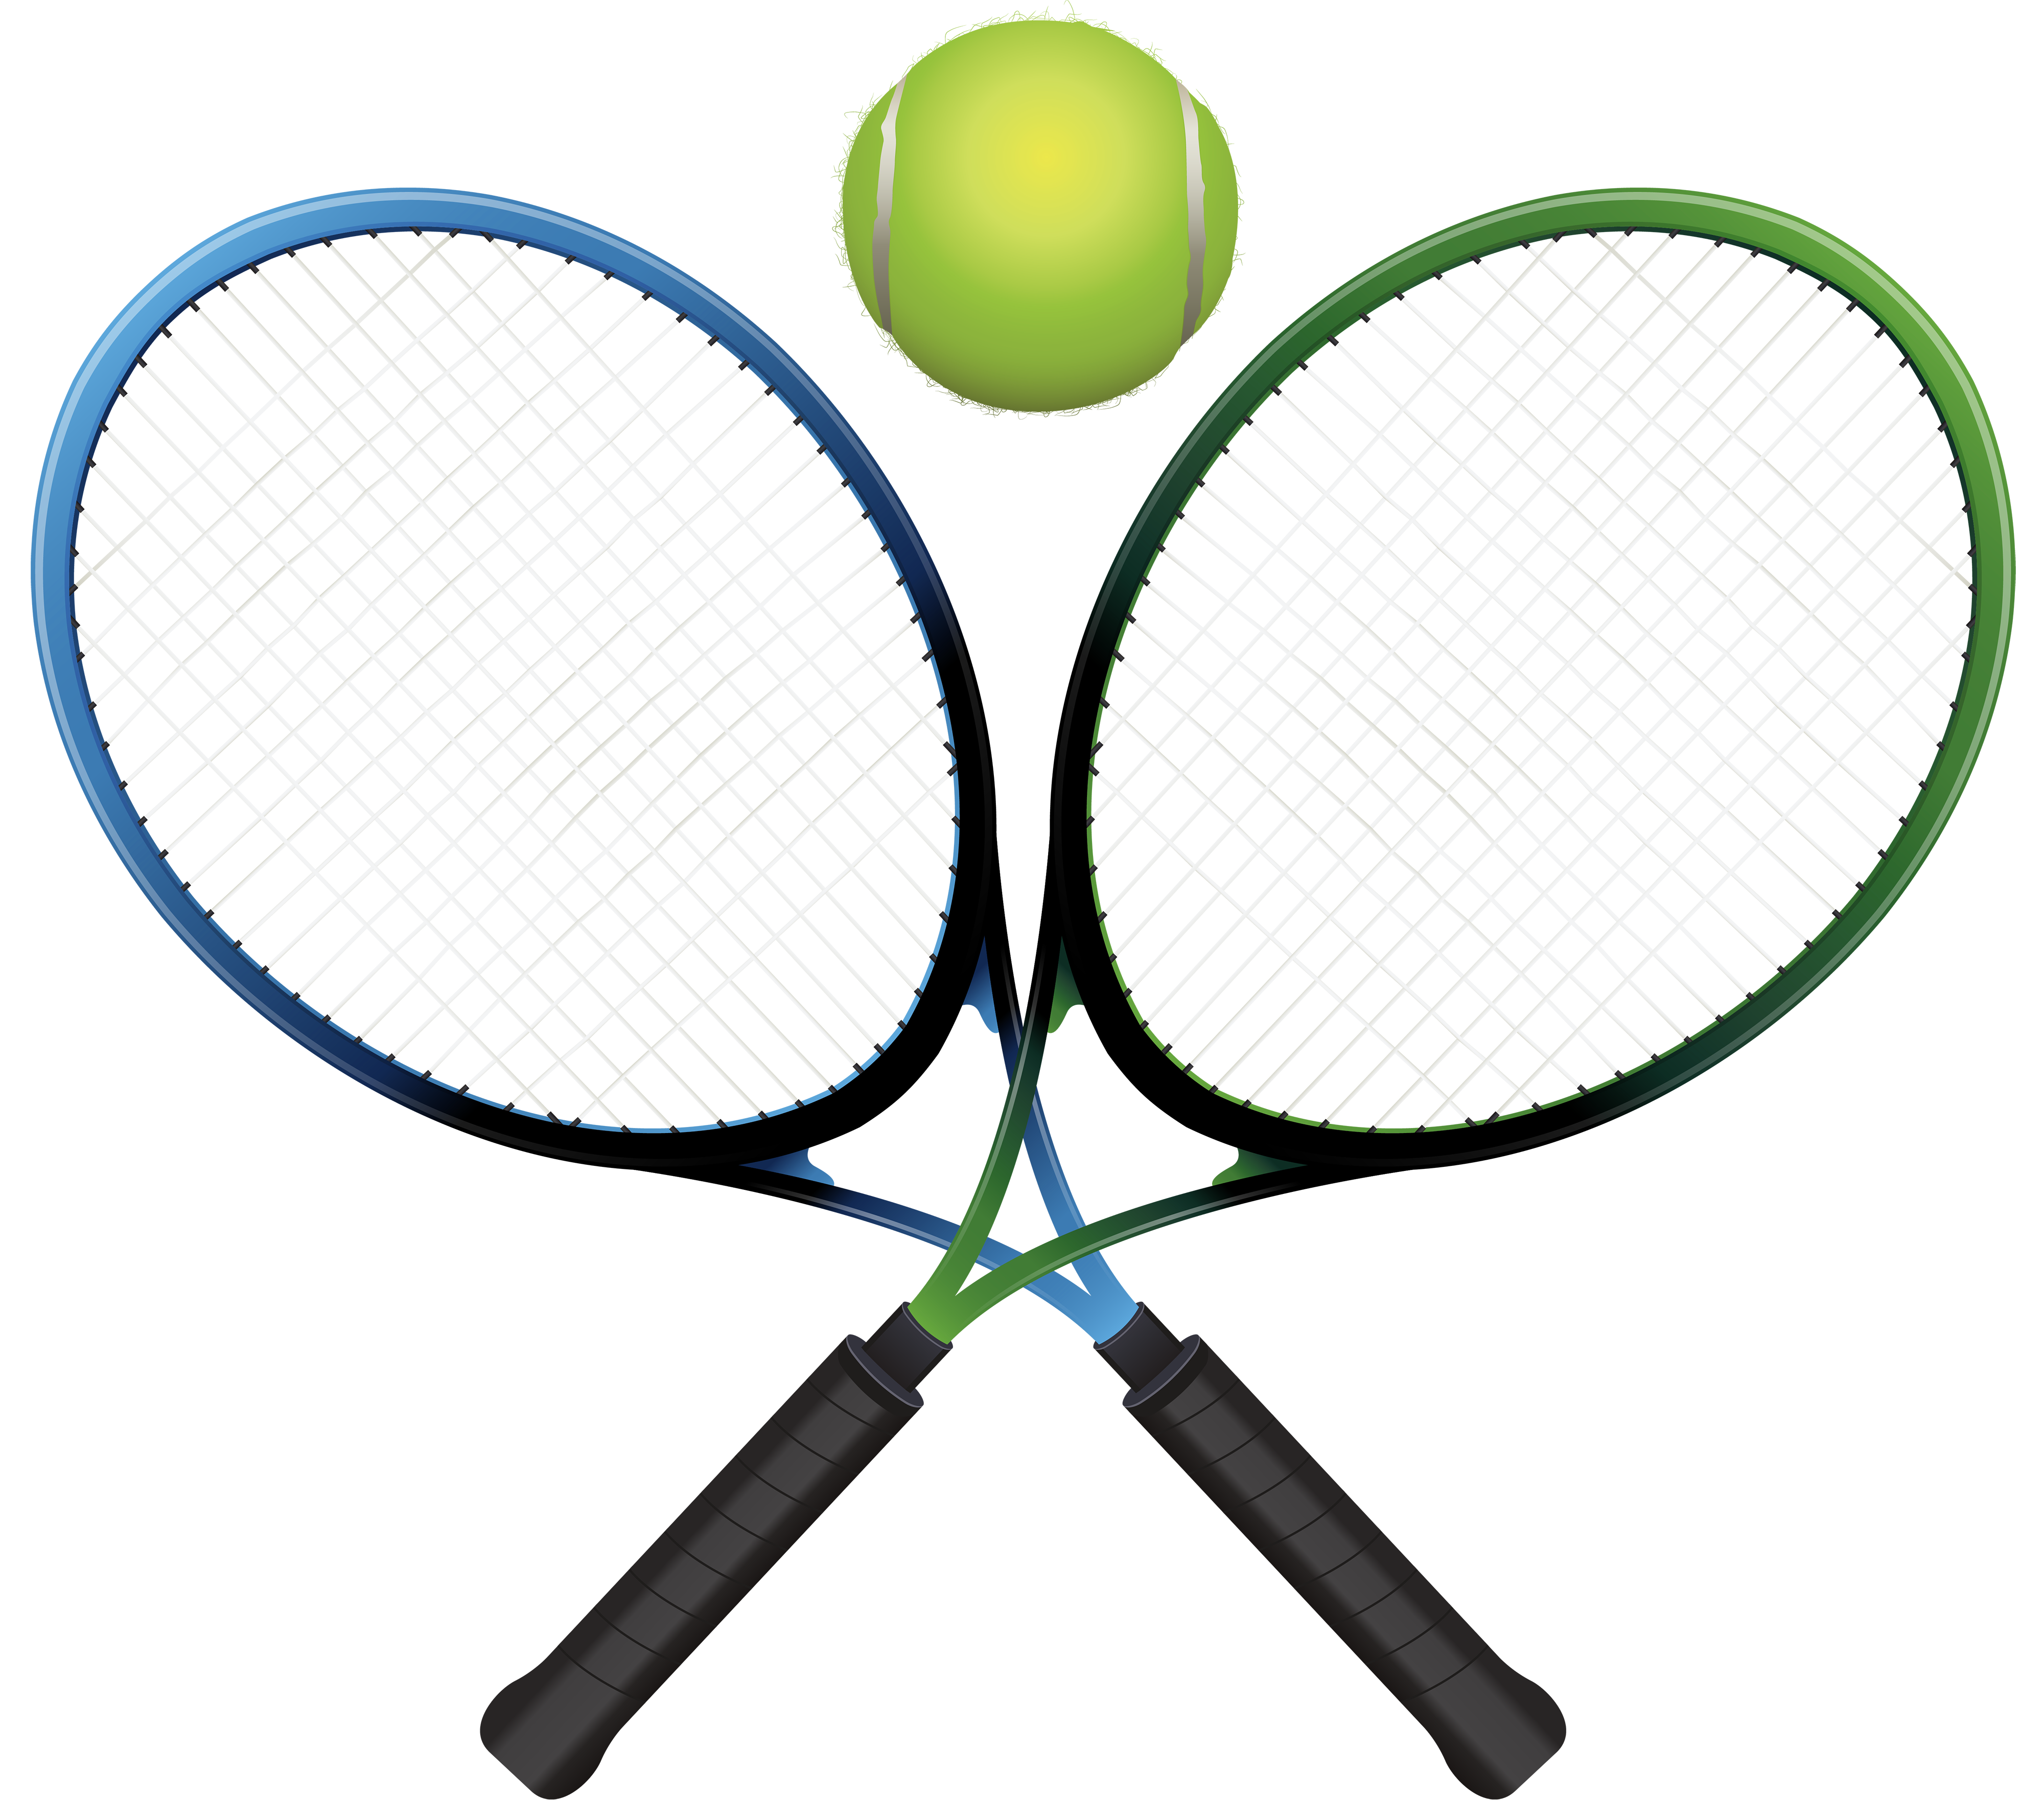 Tennis rackets and png. Badminton clipart ball badminton freeuse library